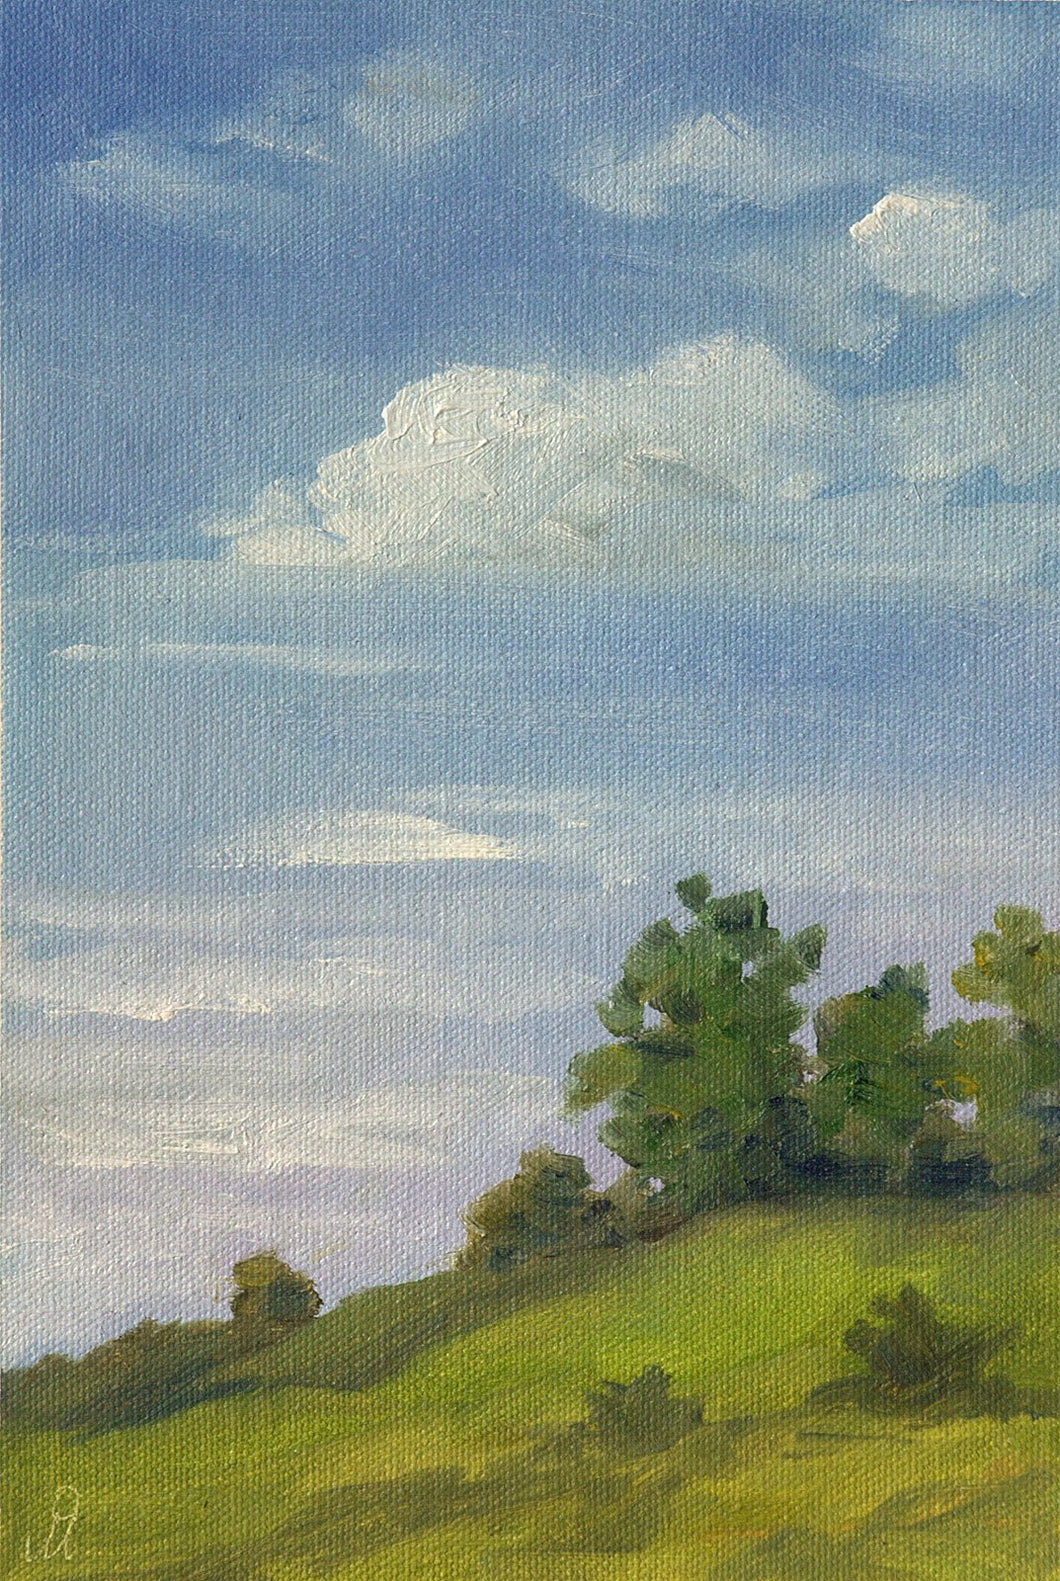 Landscape painting showing vast blue sky with a few white clouds in the background and green hills with a few trees and in the foreground.